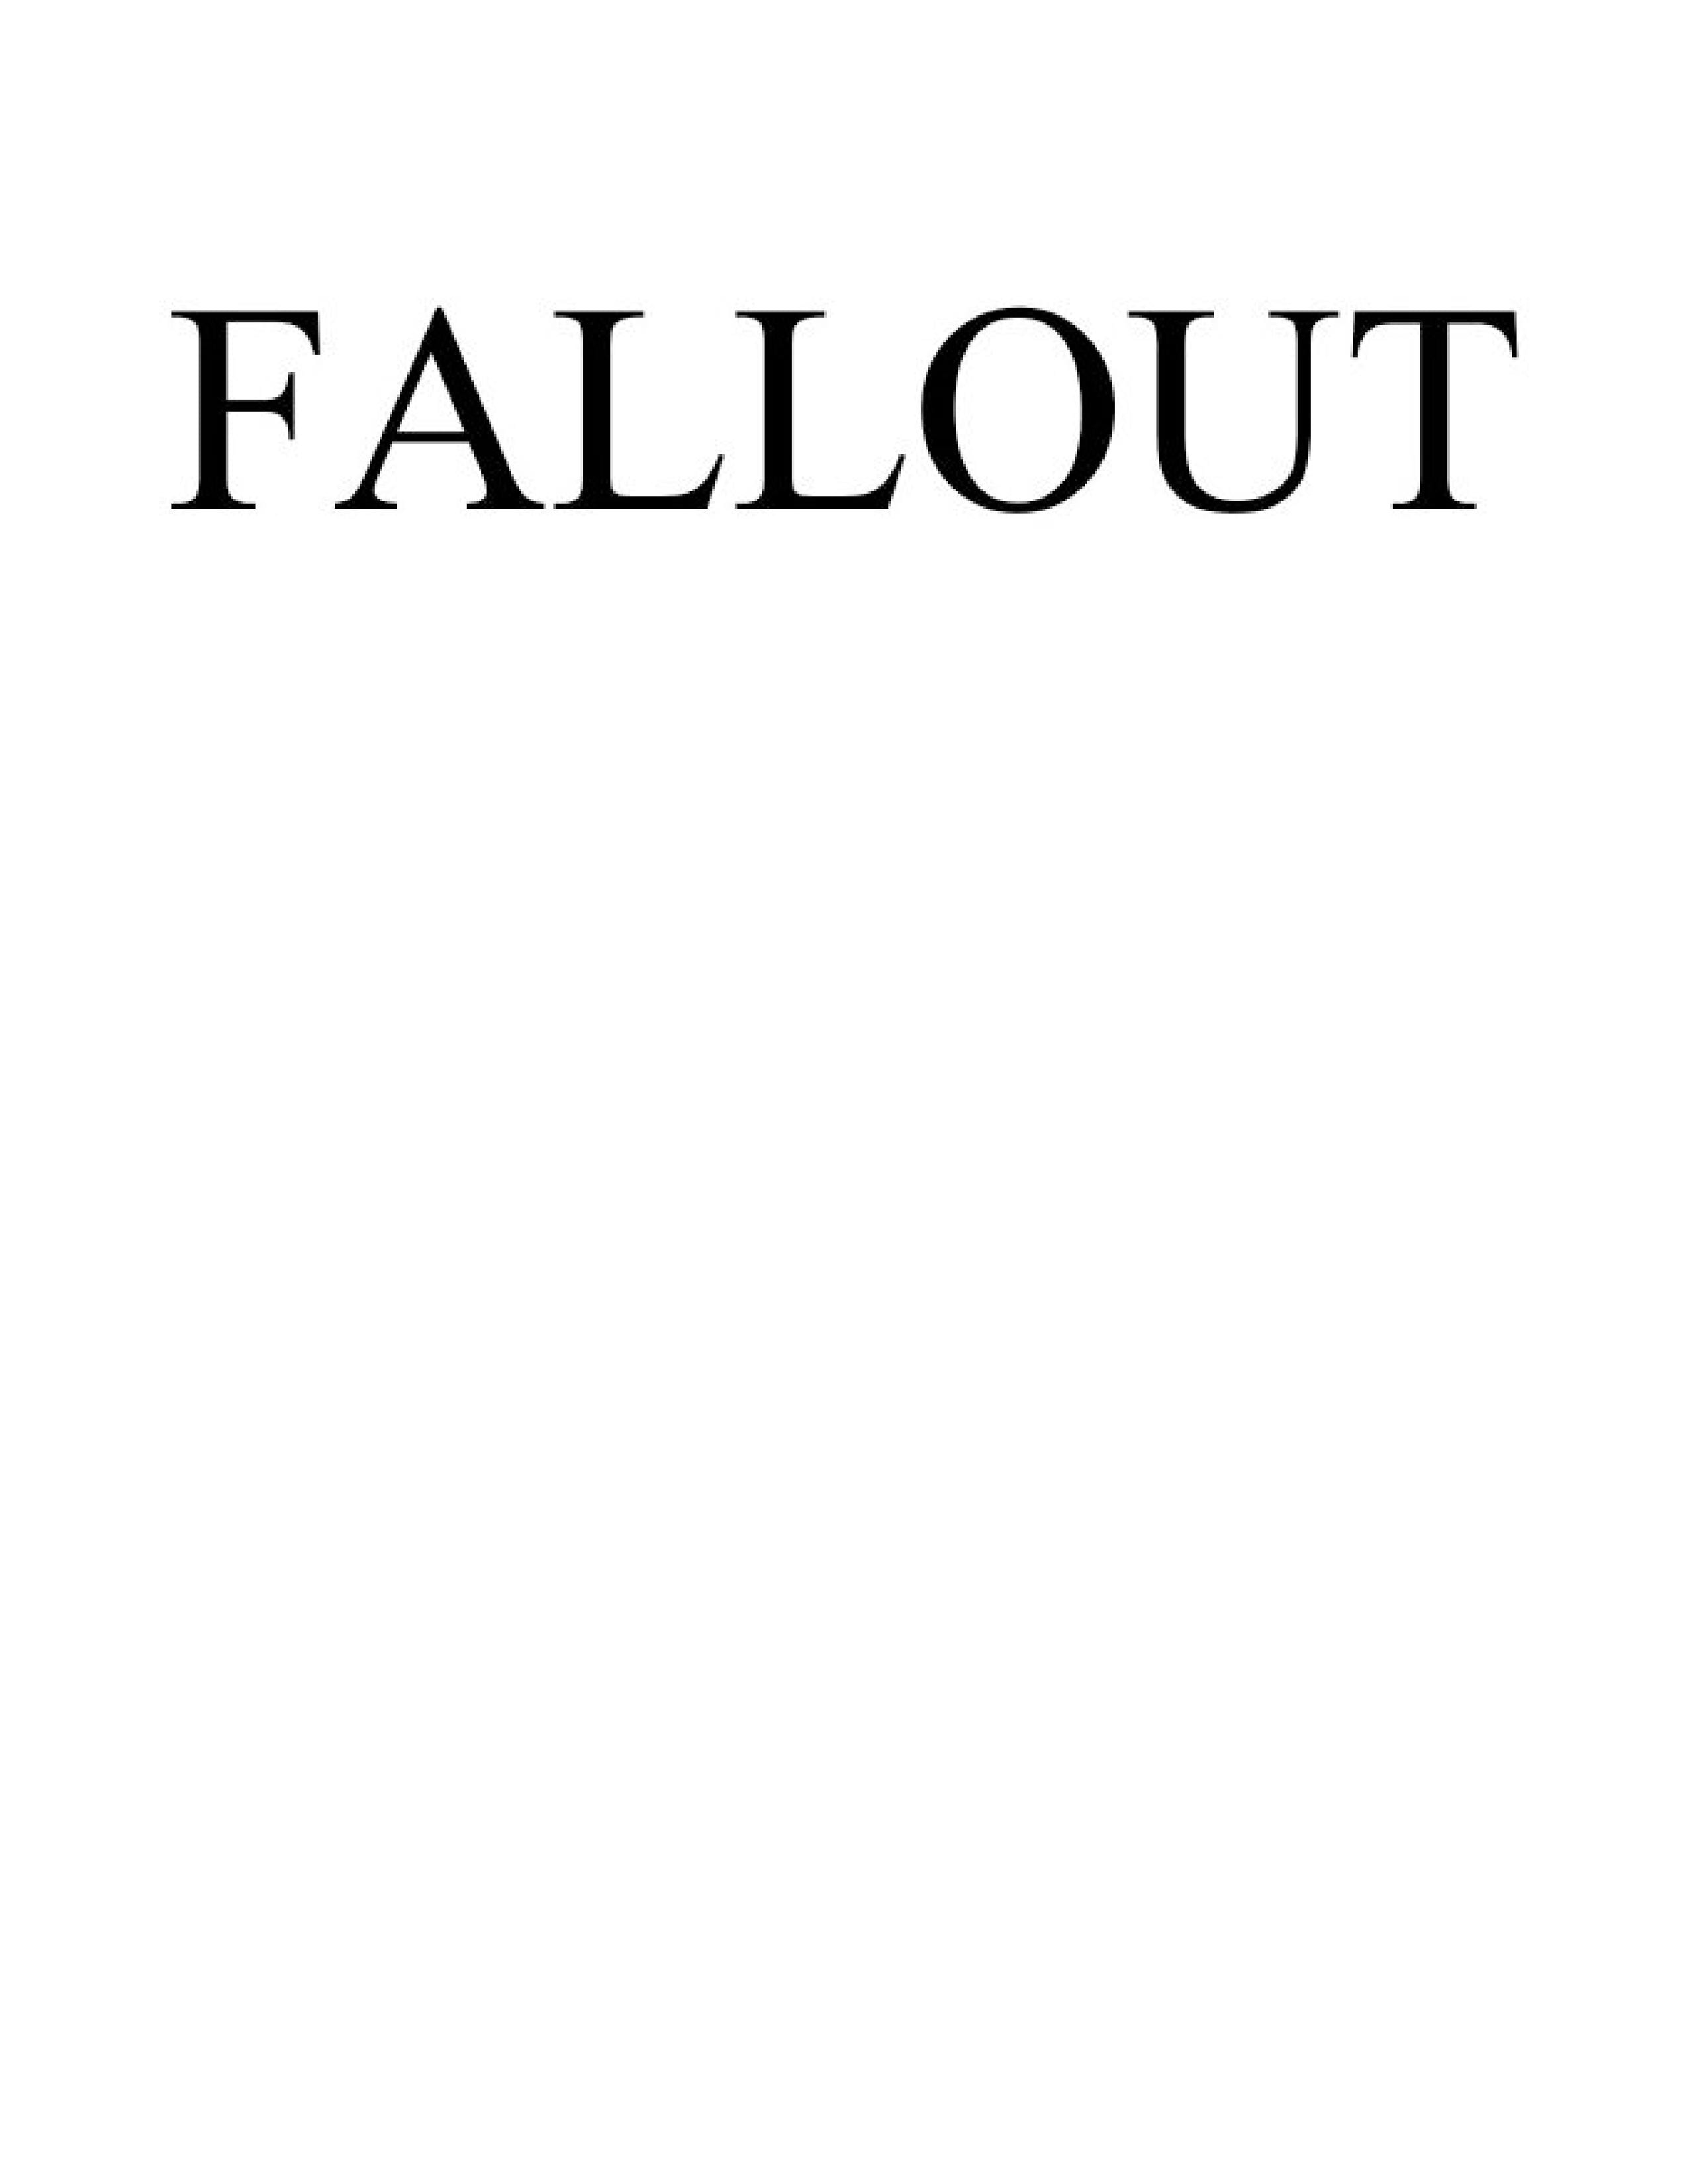 Fallout TV Show Trademark Application Page 006